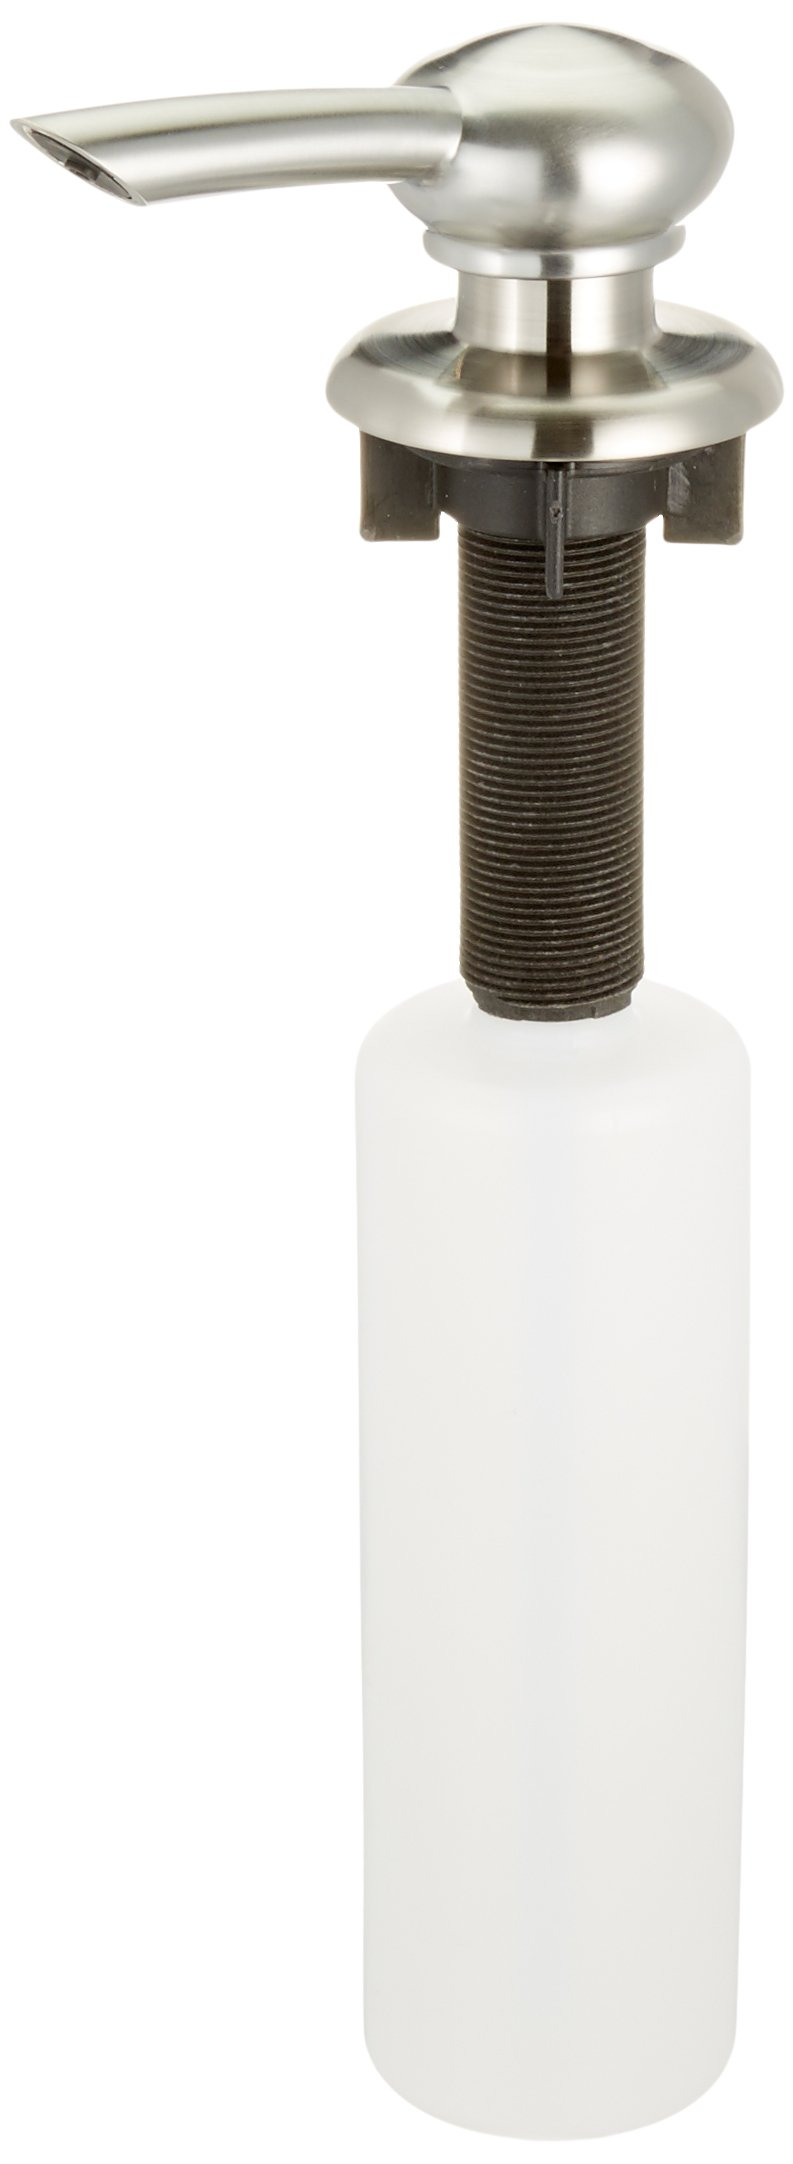 Delta Faucet RP50813SS Soap/lotion dispenser, Stainless